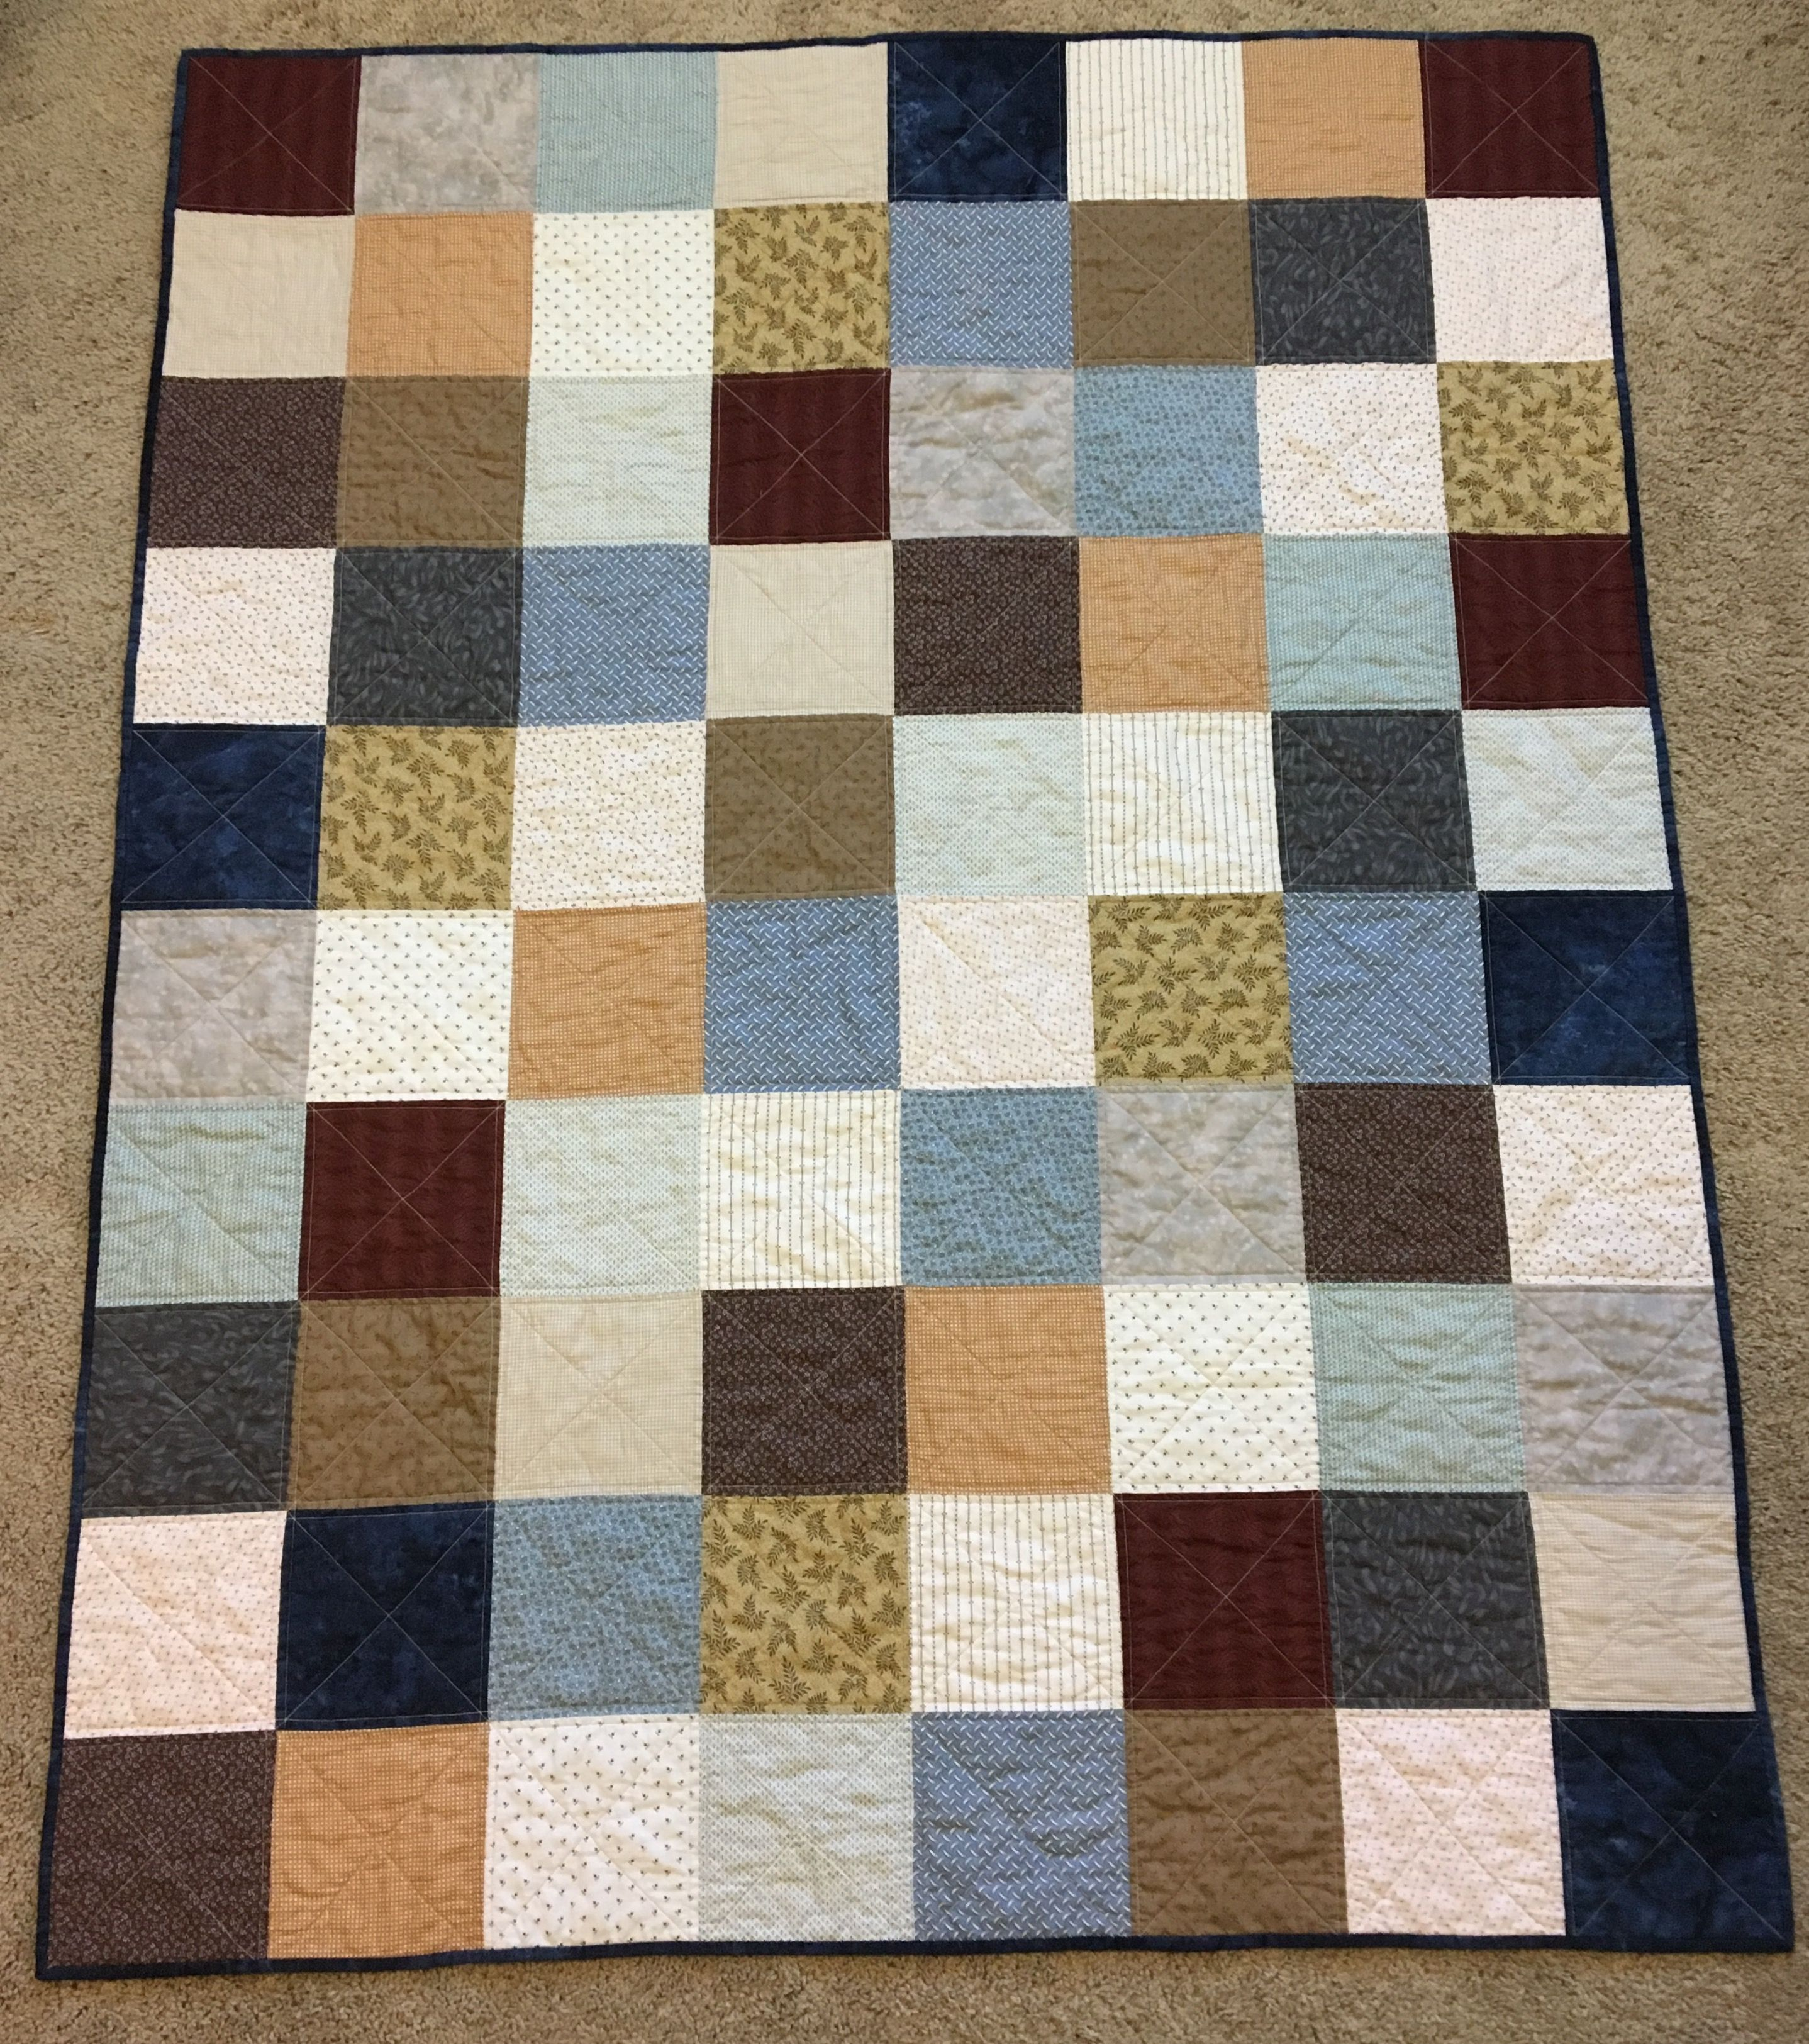 new appell burst with the quilting quilt a block tutorial from man rob sewing